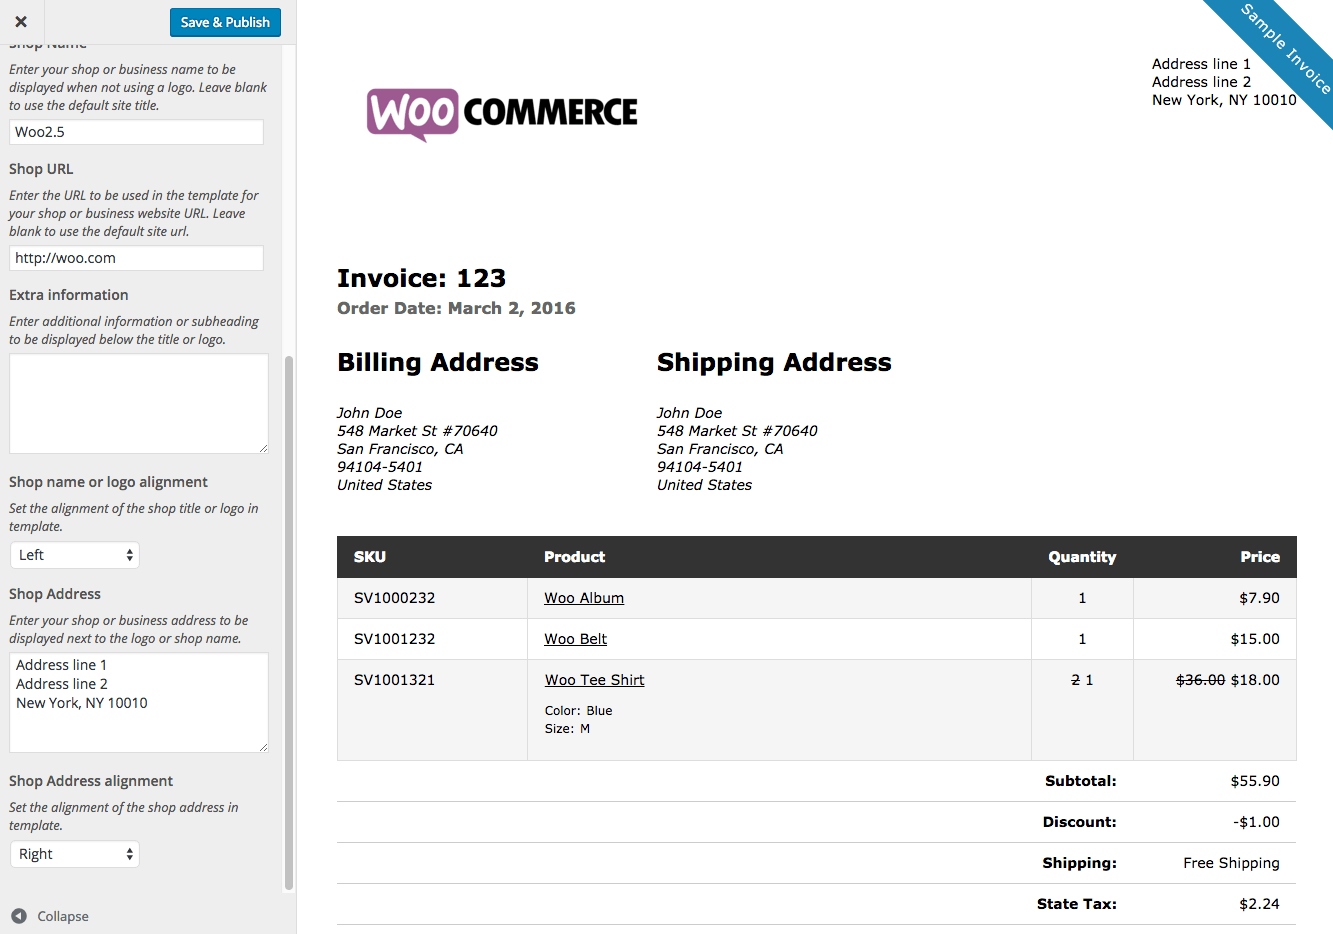 Angkajituus  Picturesque Woocommerce Print Invoices Amp Packing Lists  Woocommerce Docs With Lovable Woocommerce Print Invoices  Packing Lists Customizer With Captivating Receipt Scanner And Organizer Also Toys R Us Receipt In Addition Keeping Receipts And Delta Flight Receipt As Well As Receipt Scanner App Iphone Additionally Epson Receipt Printer Driver From Docswoocommercecom With Angkajituus  Lovable Woocommerce Print Invoices Amp Packing Lists  Woocommerce Docs With Captivating Woocommerce Print Invoices  Packing Lists Customizer And Picturesque Receipt Scanner And Organizer Also Toys R Us Receipt In Addition Keeping Receipts From Docswoocommercecom